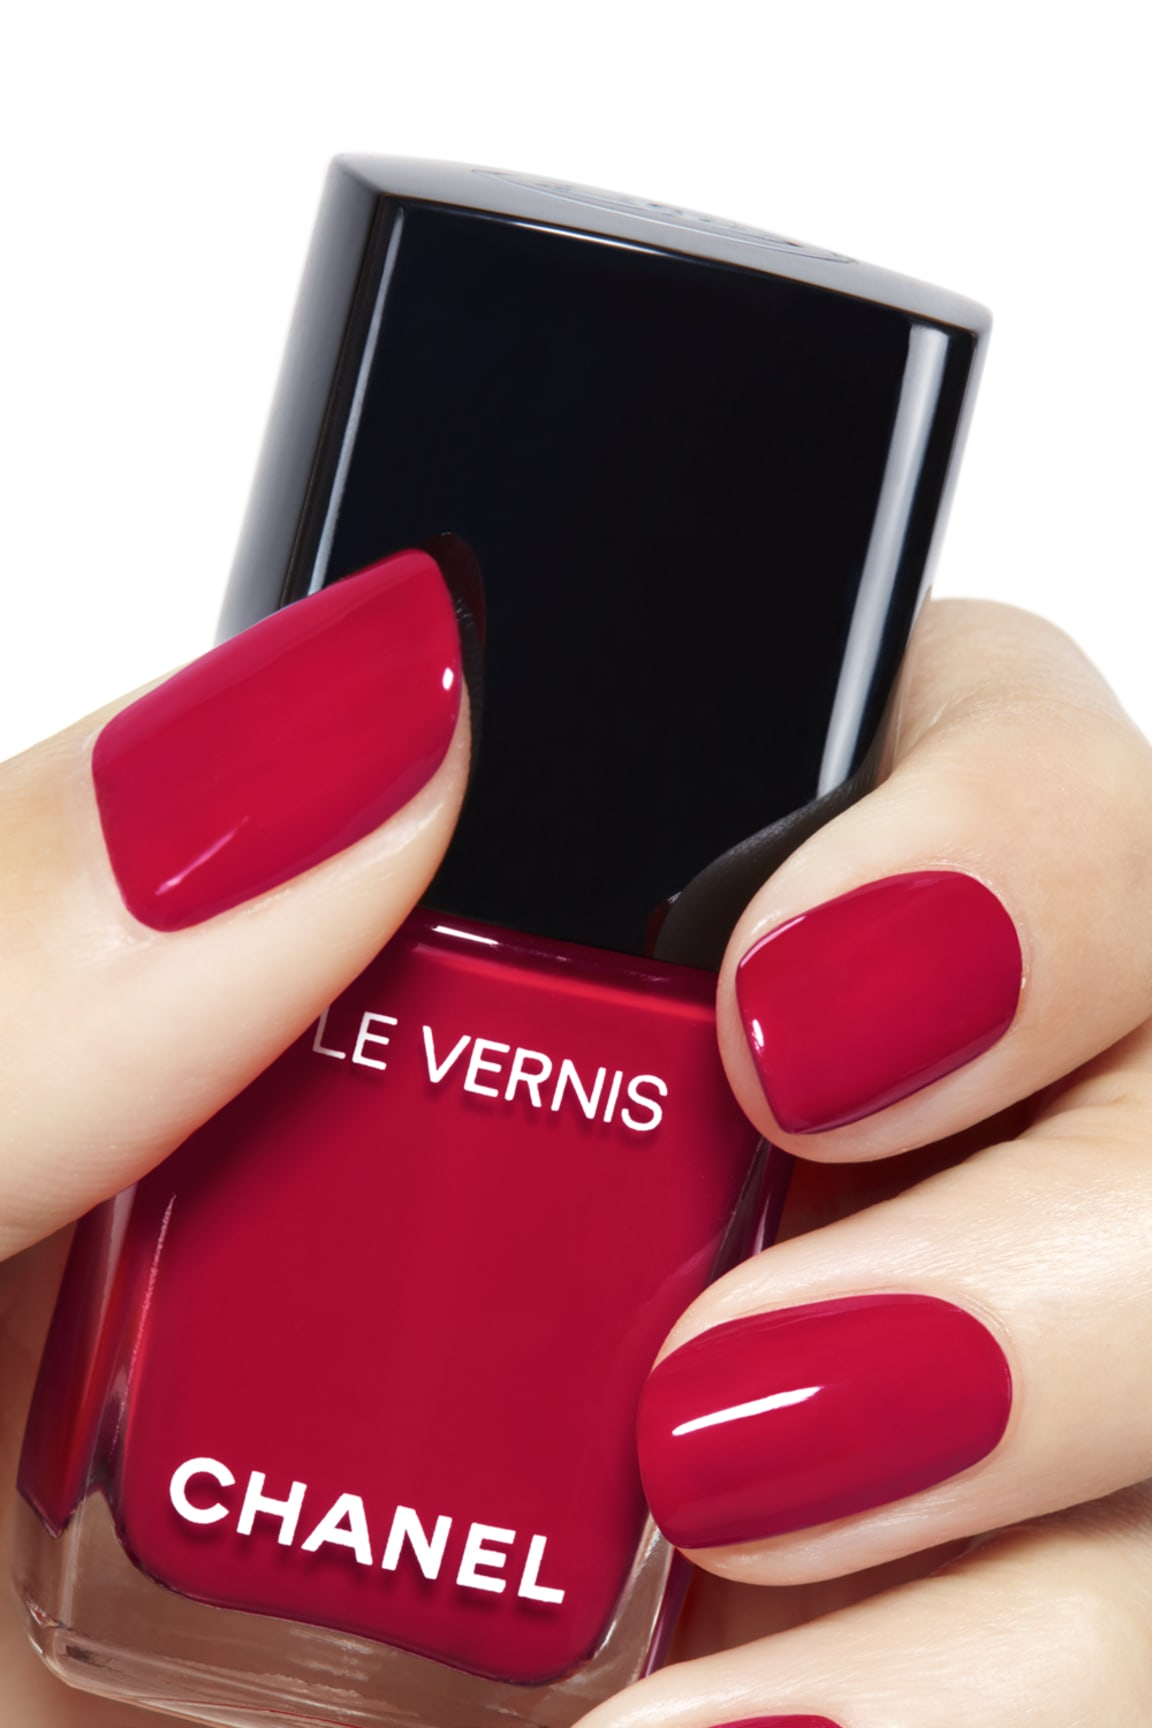 Application makeup visual 2 - LE VERNIS 749 - SAILOR